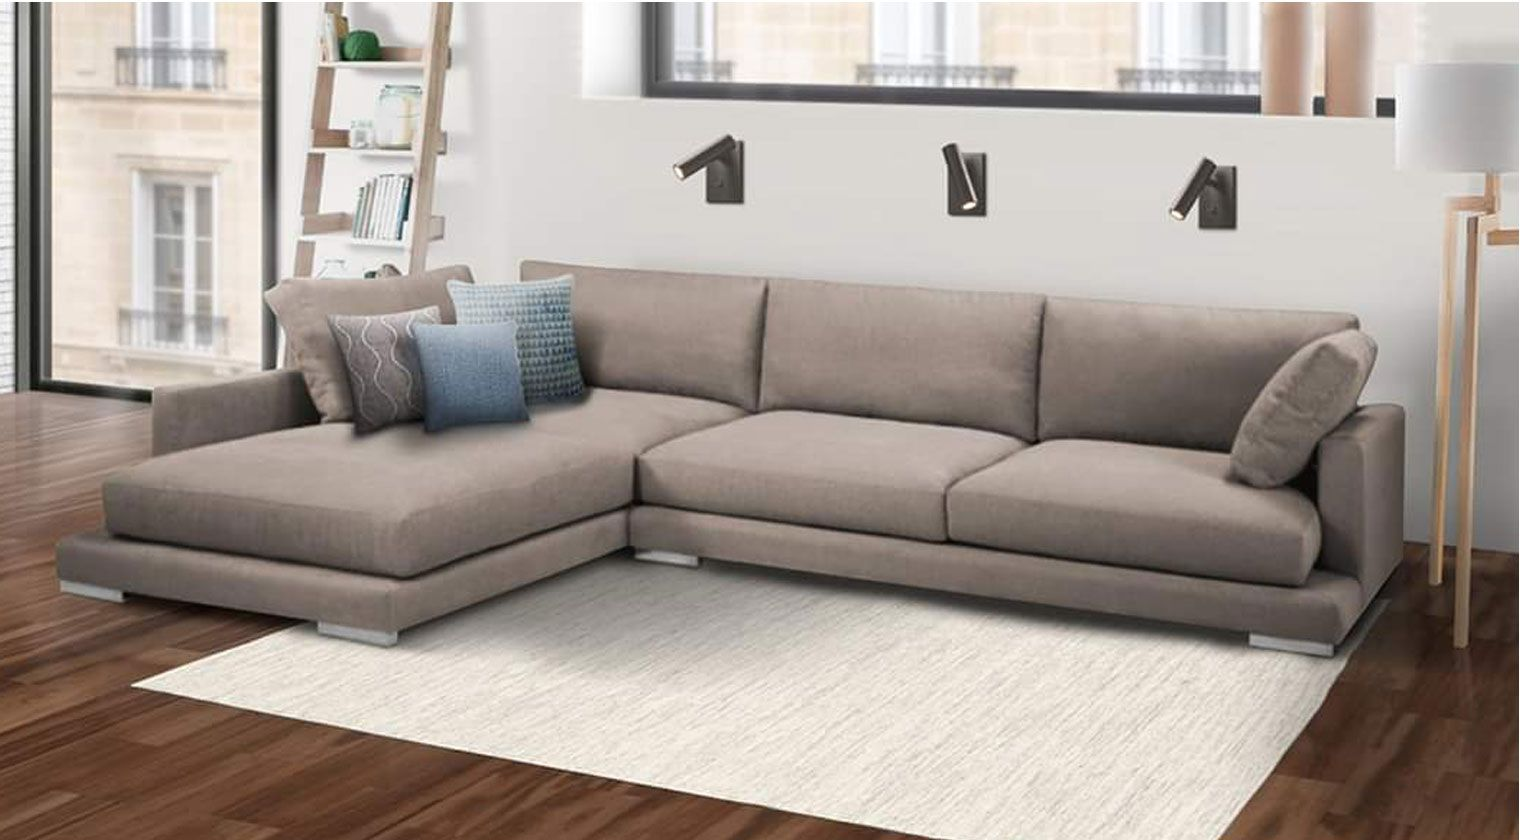 Imagen-Chaise-Longue-Tela-PERSEO-4